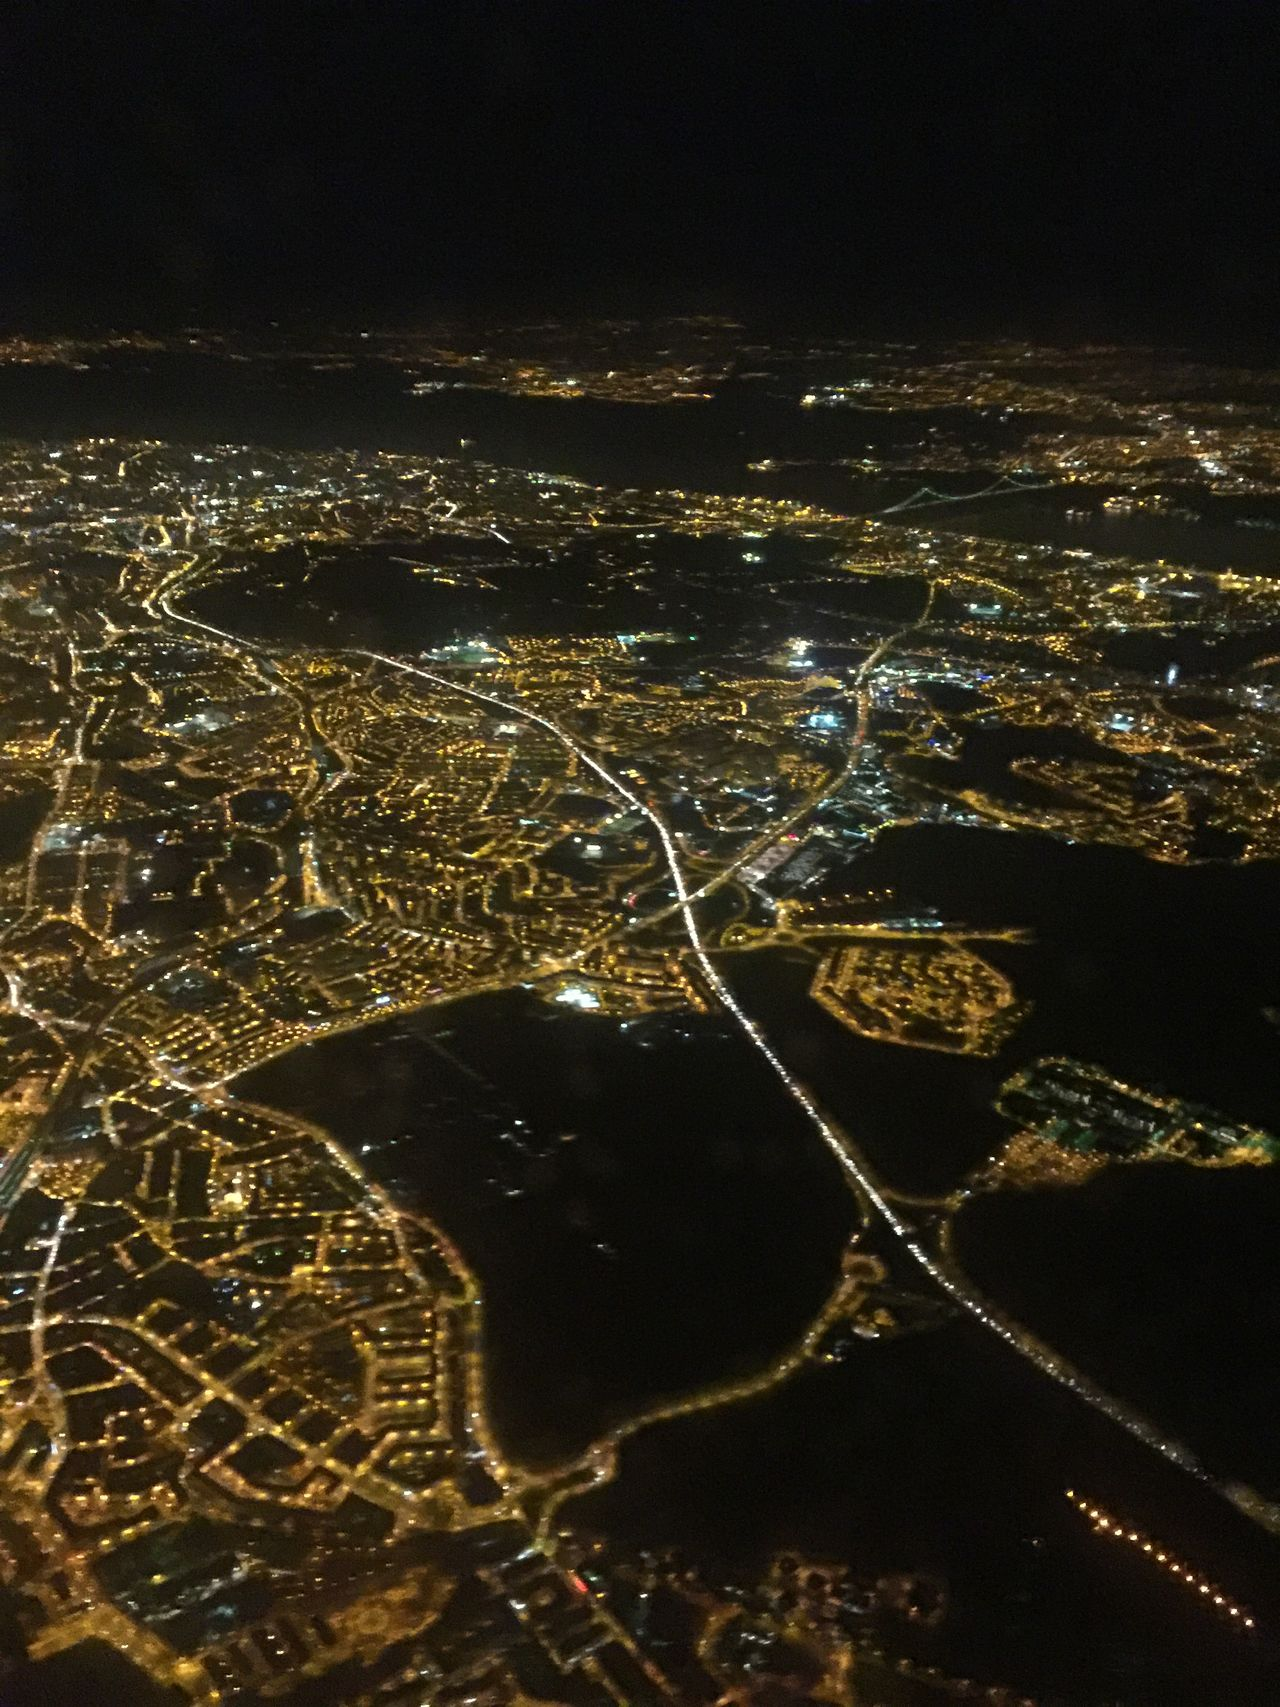 Nightphotography Night Lights Lisbon Coming Into Land Lisbon At Night Landscapes With WhiteWall